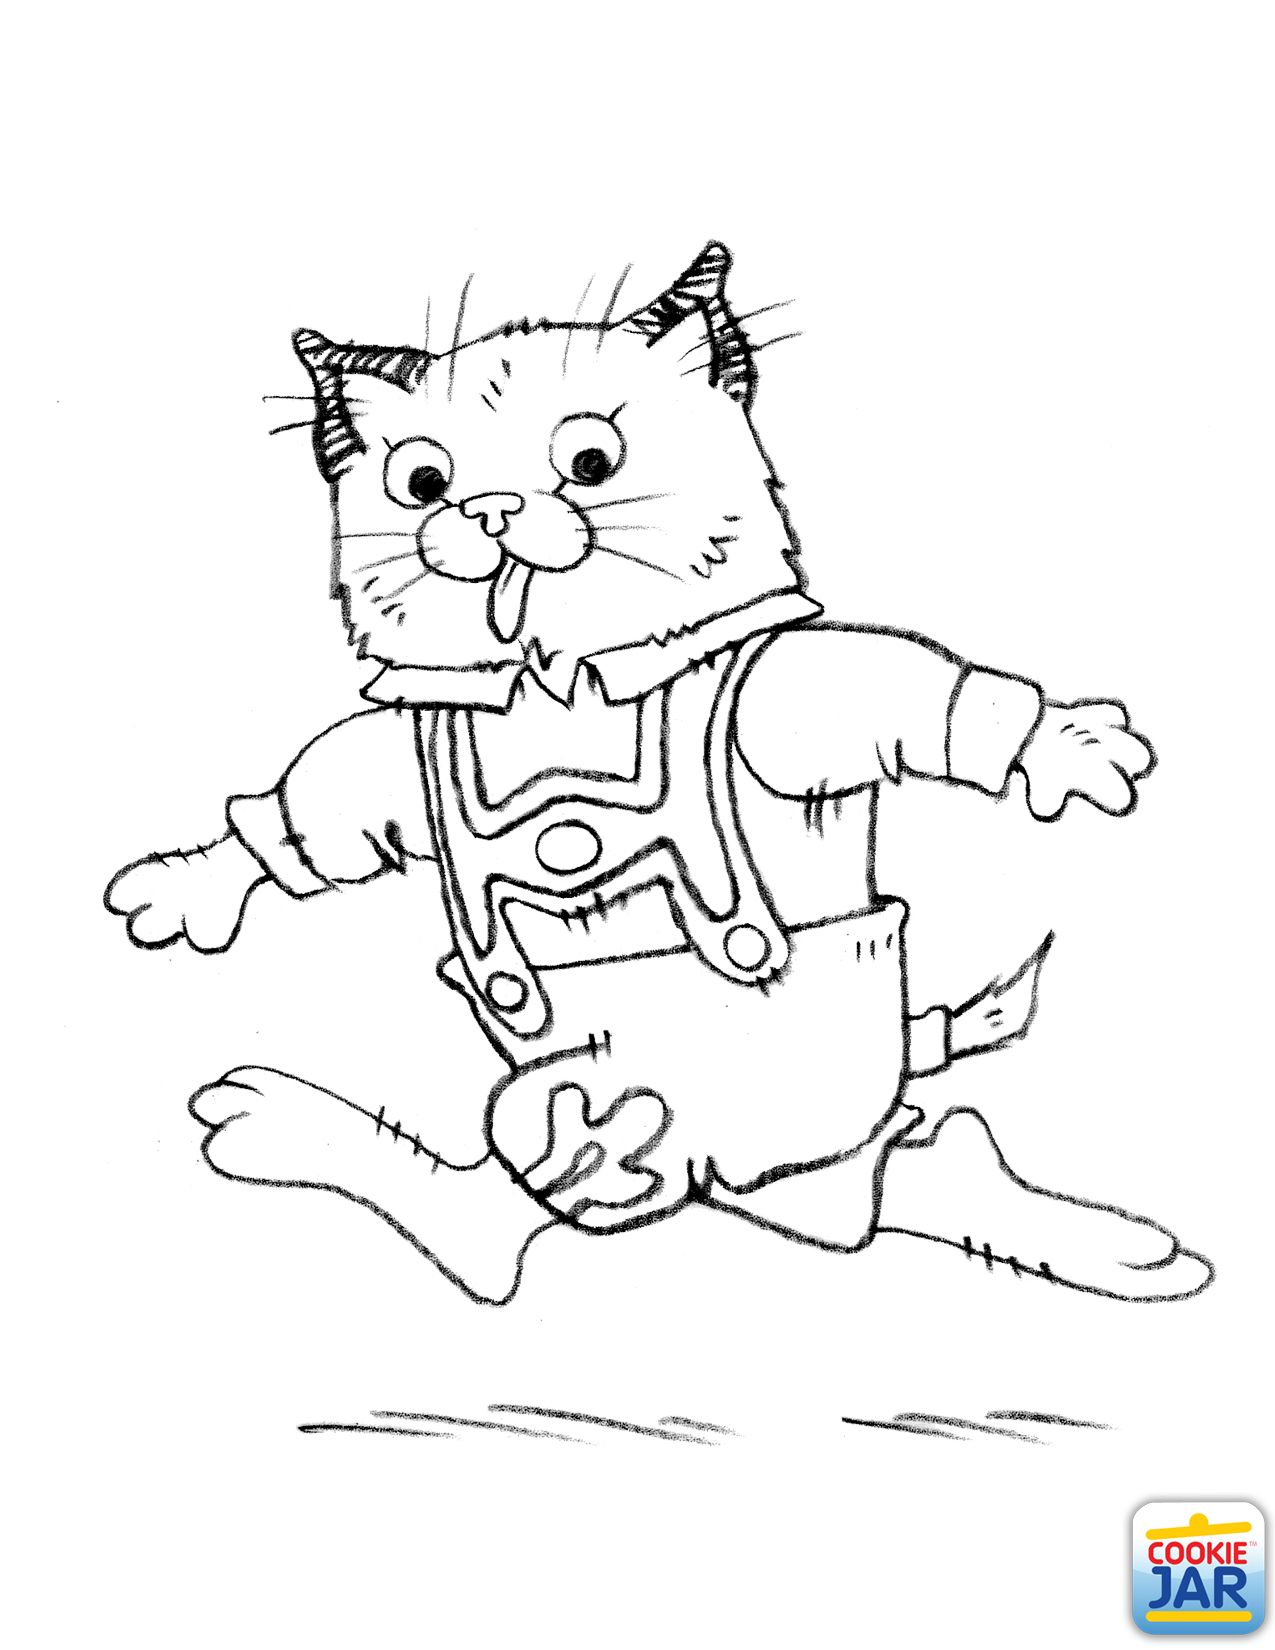 Huckle Cat coloring page Richard